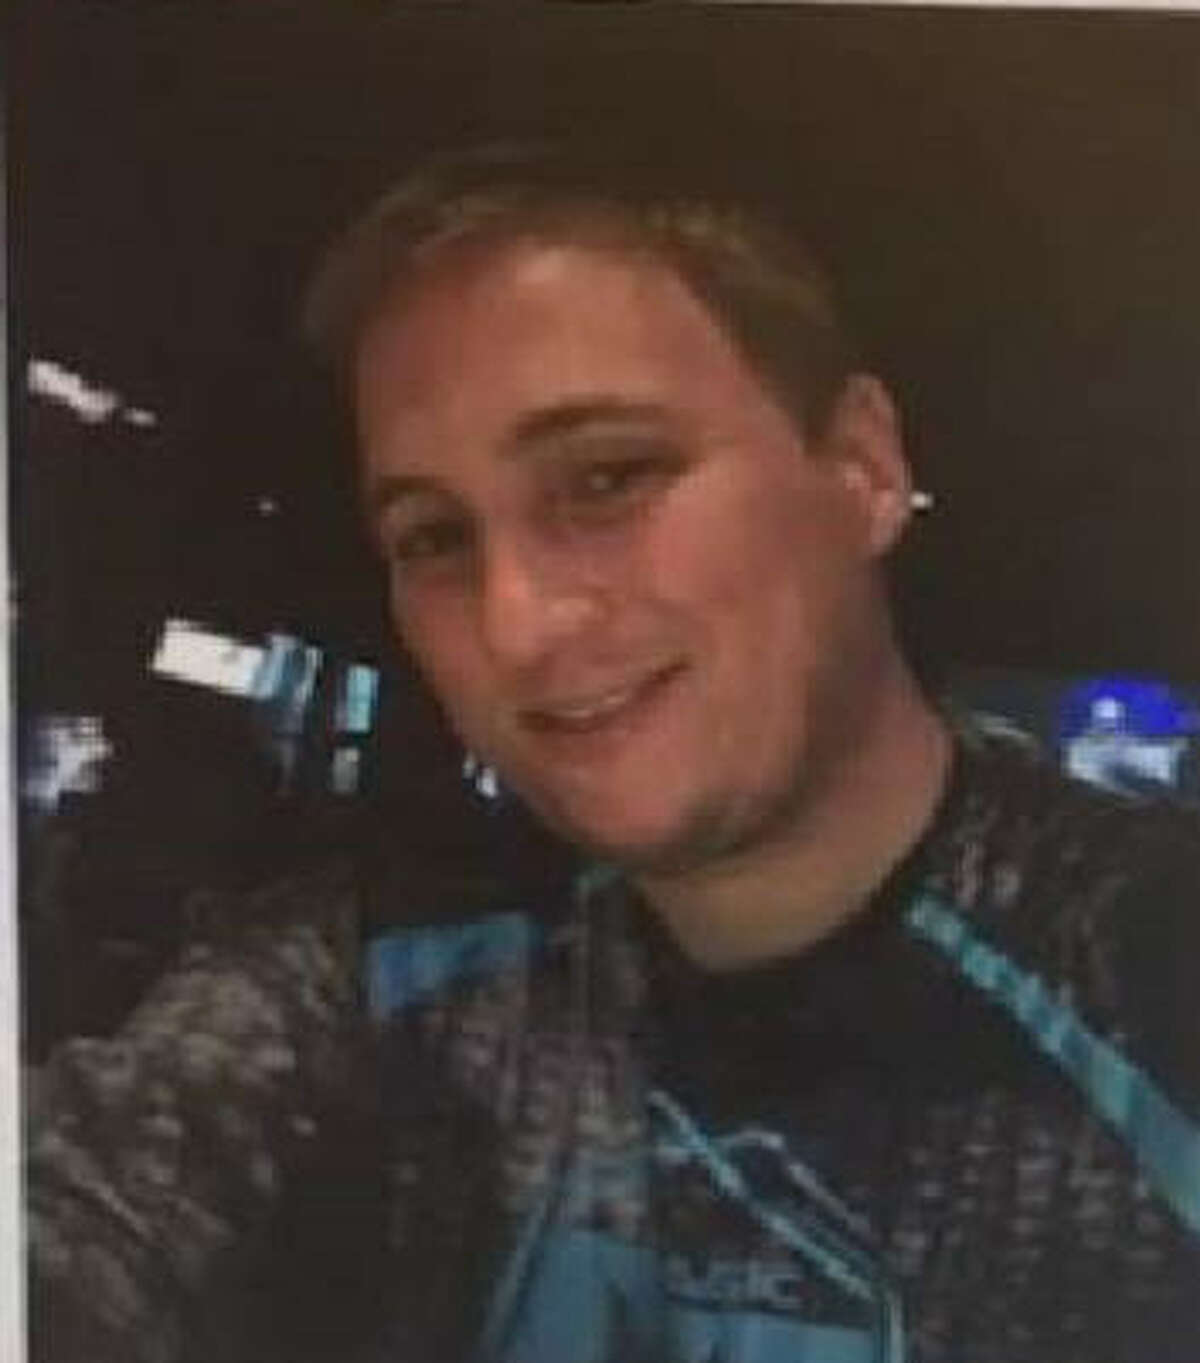 Jeffrey Hargrove, a 33-year-old Texas Tech student, disappeared on Saturday night after the school's football game in Lubbock.